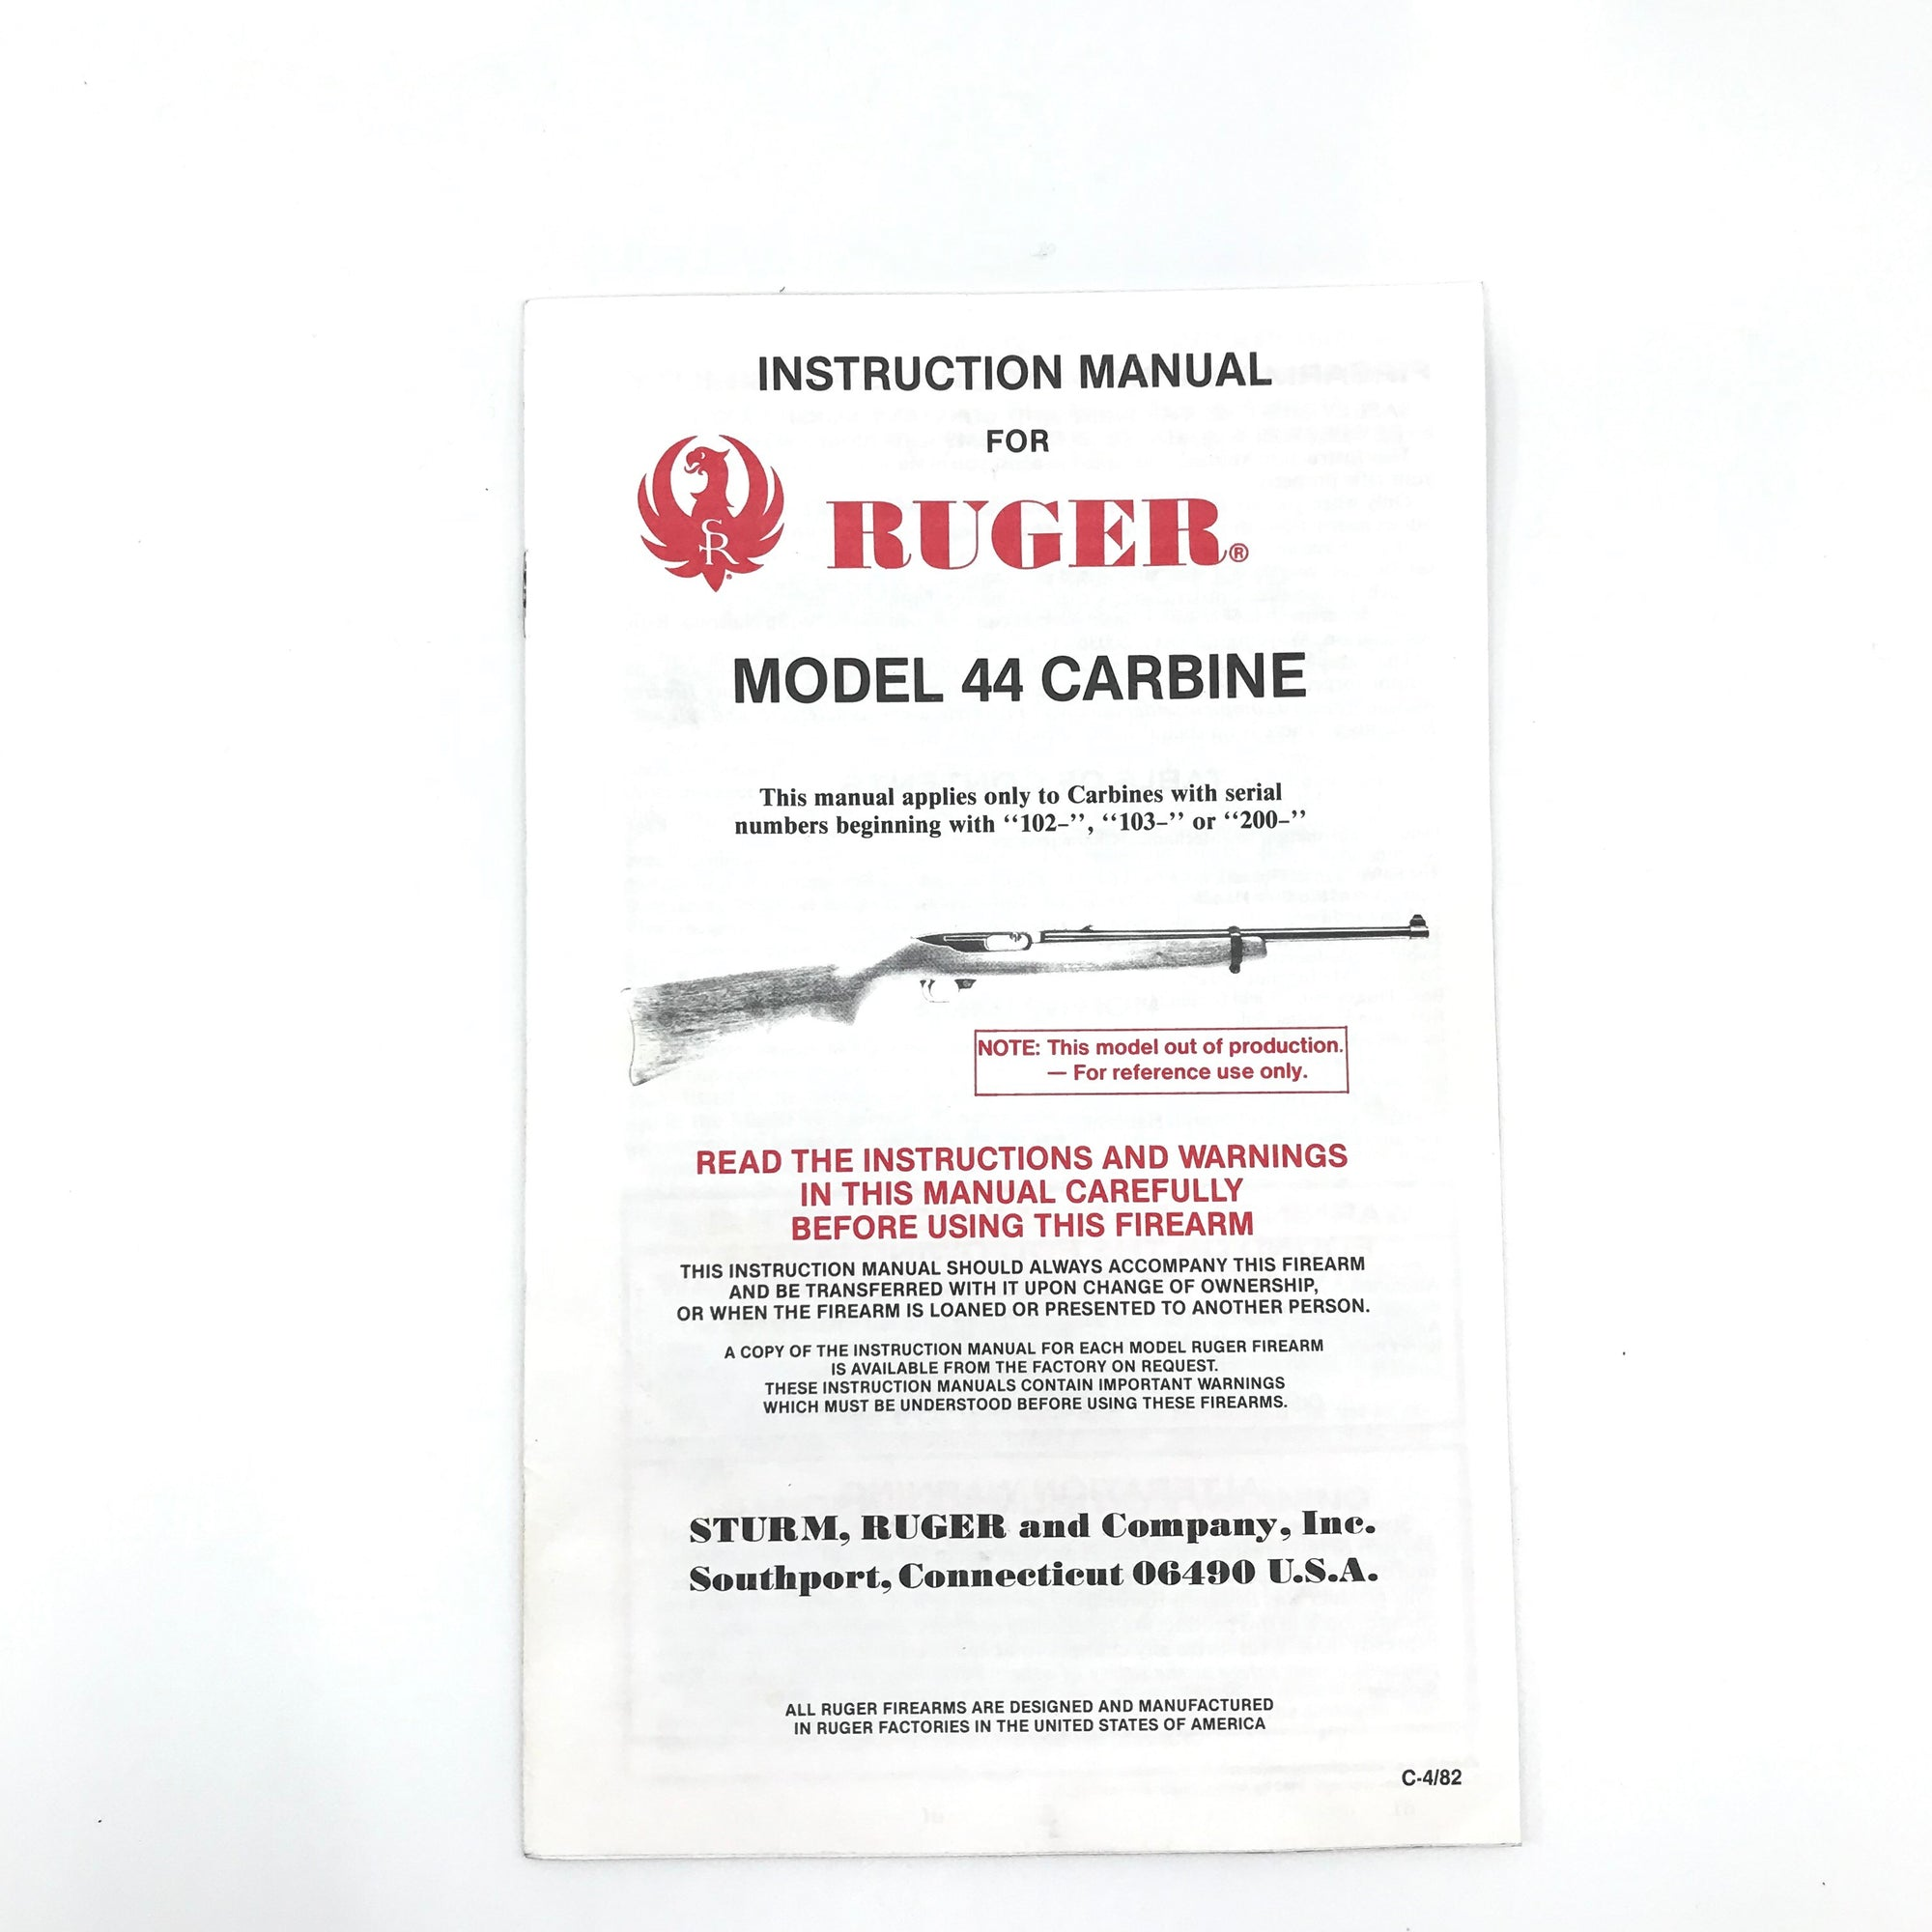 Instruction Manual for Ruger Model 44 Carbine